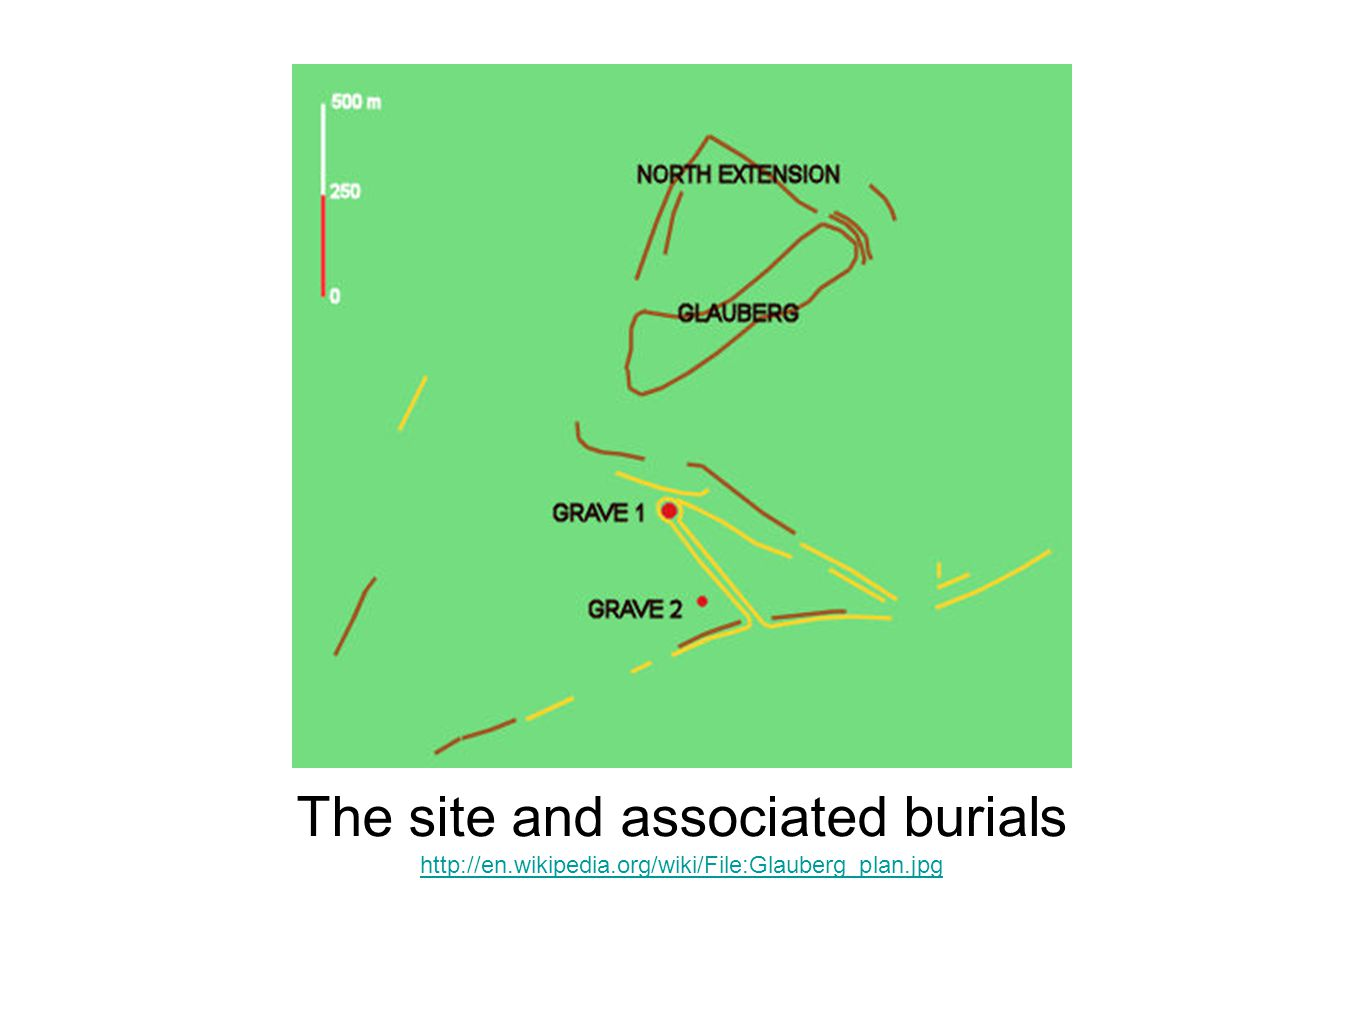 The site and associated burials